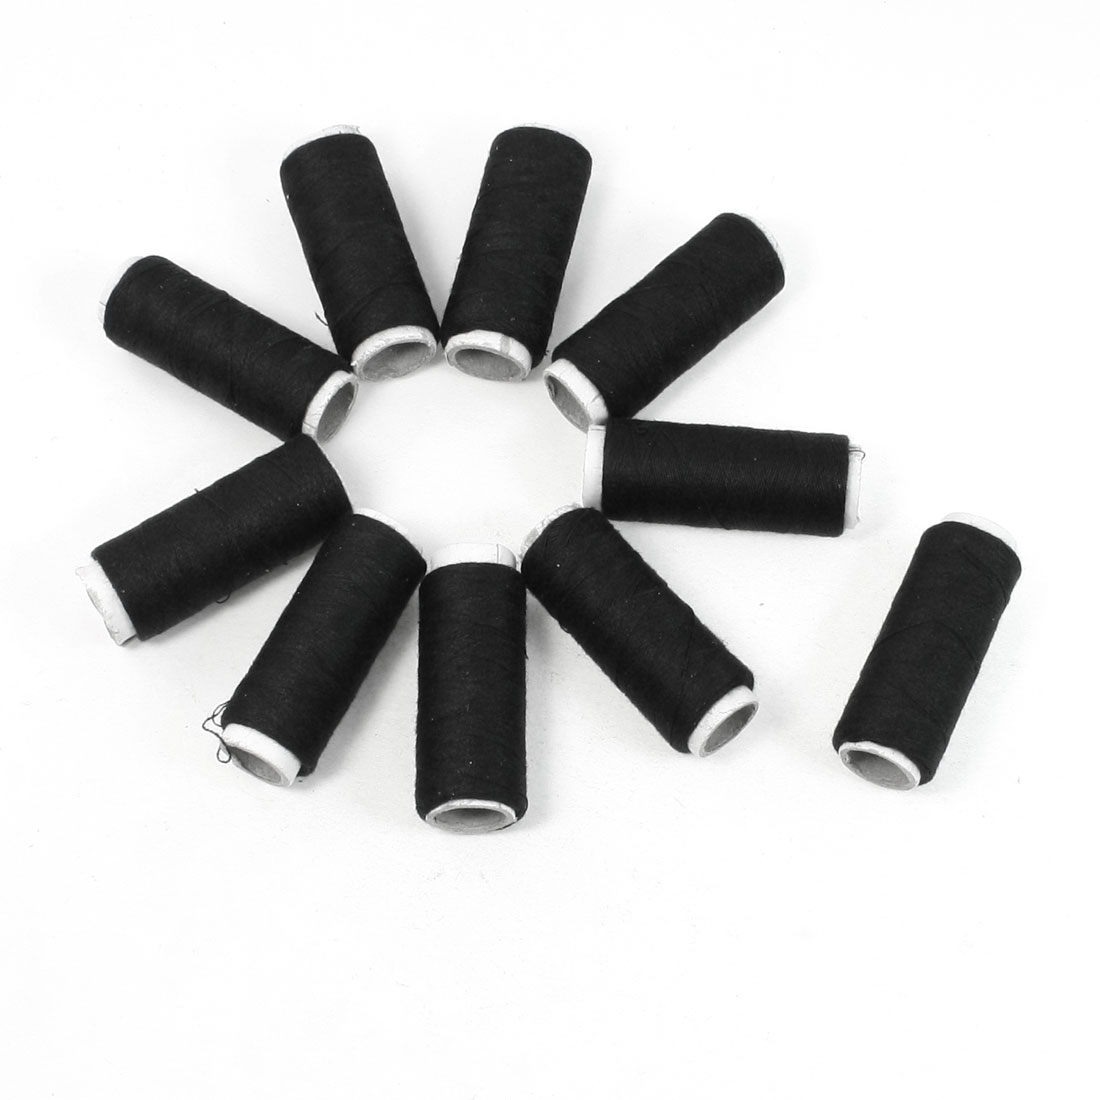 Seamstress Tailor Hand Embroidery Sewing Quilting Thread Spools Black 10 Pcs